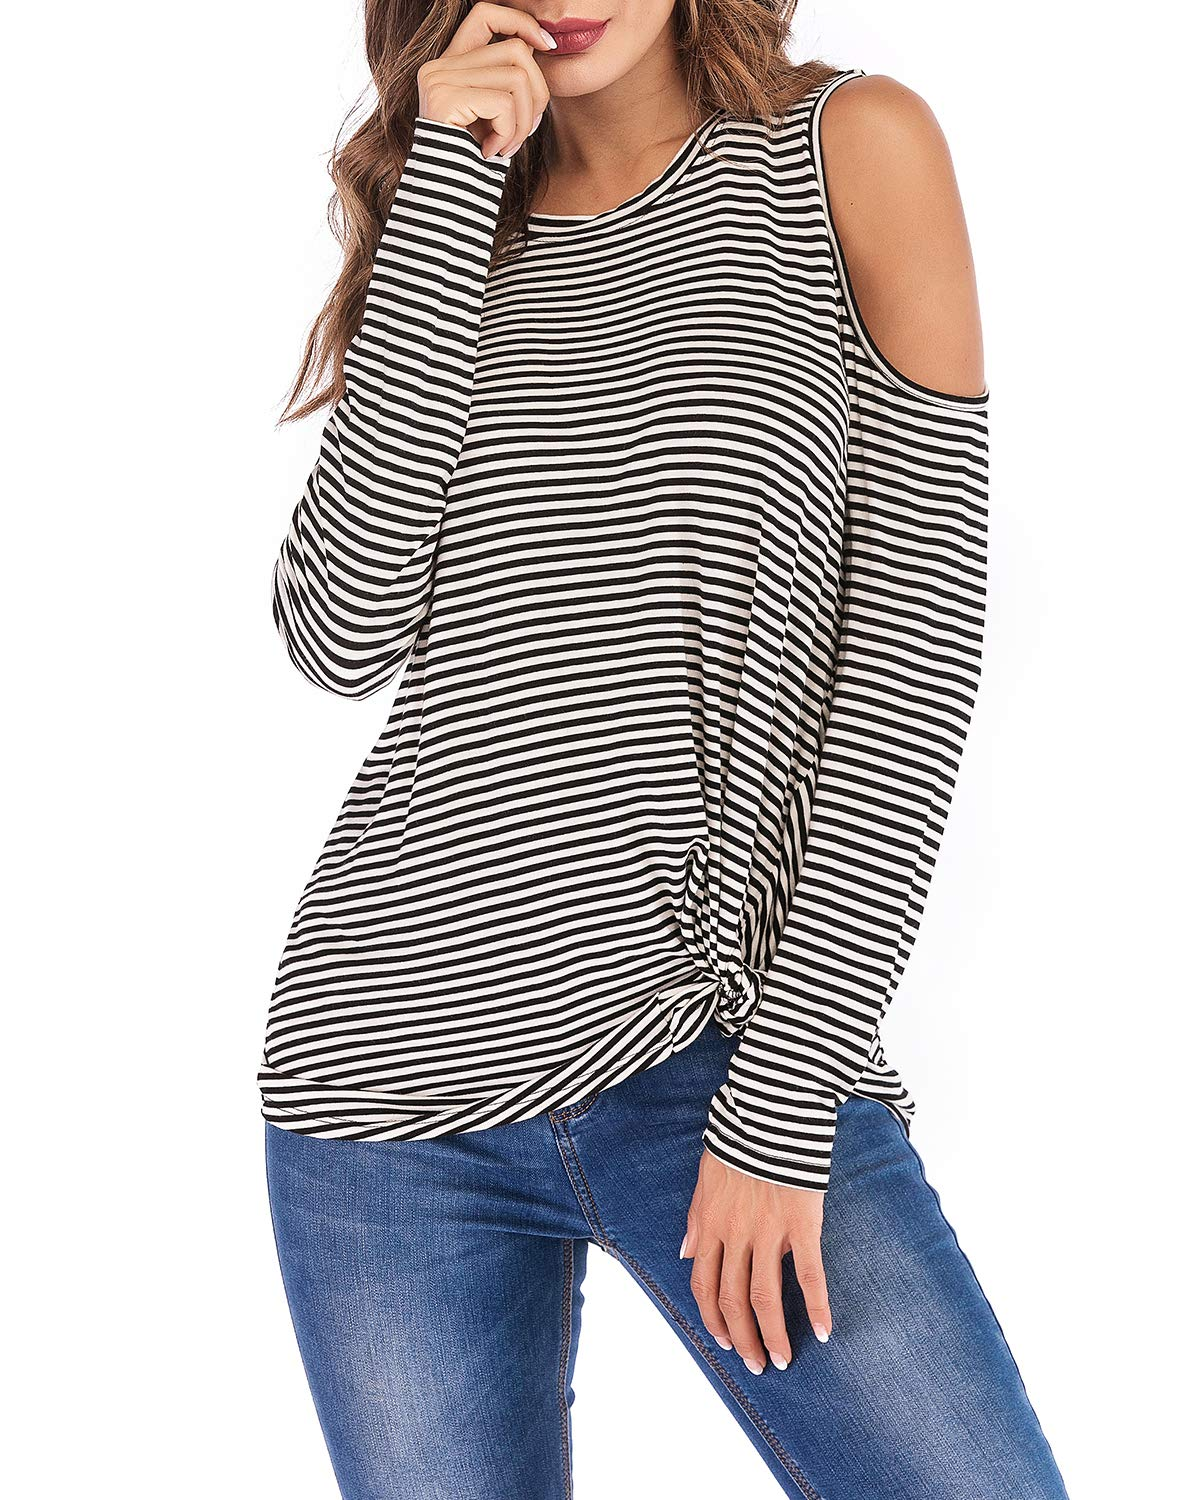 Eanklosco Cold Shoulder Shirt Women Long Sleeve Cut Out Tunic Tops Casual Knot Twist Blouse (Black White Stripe, L)